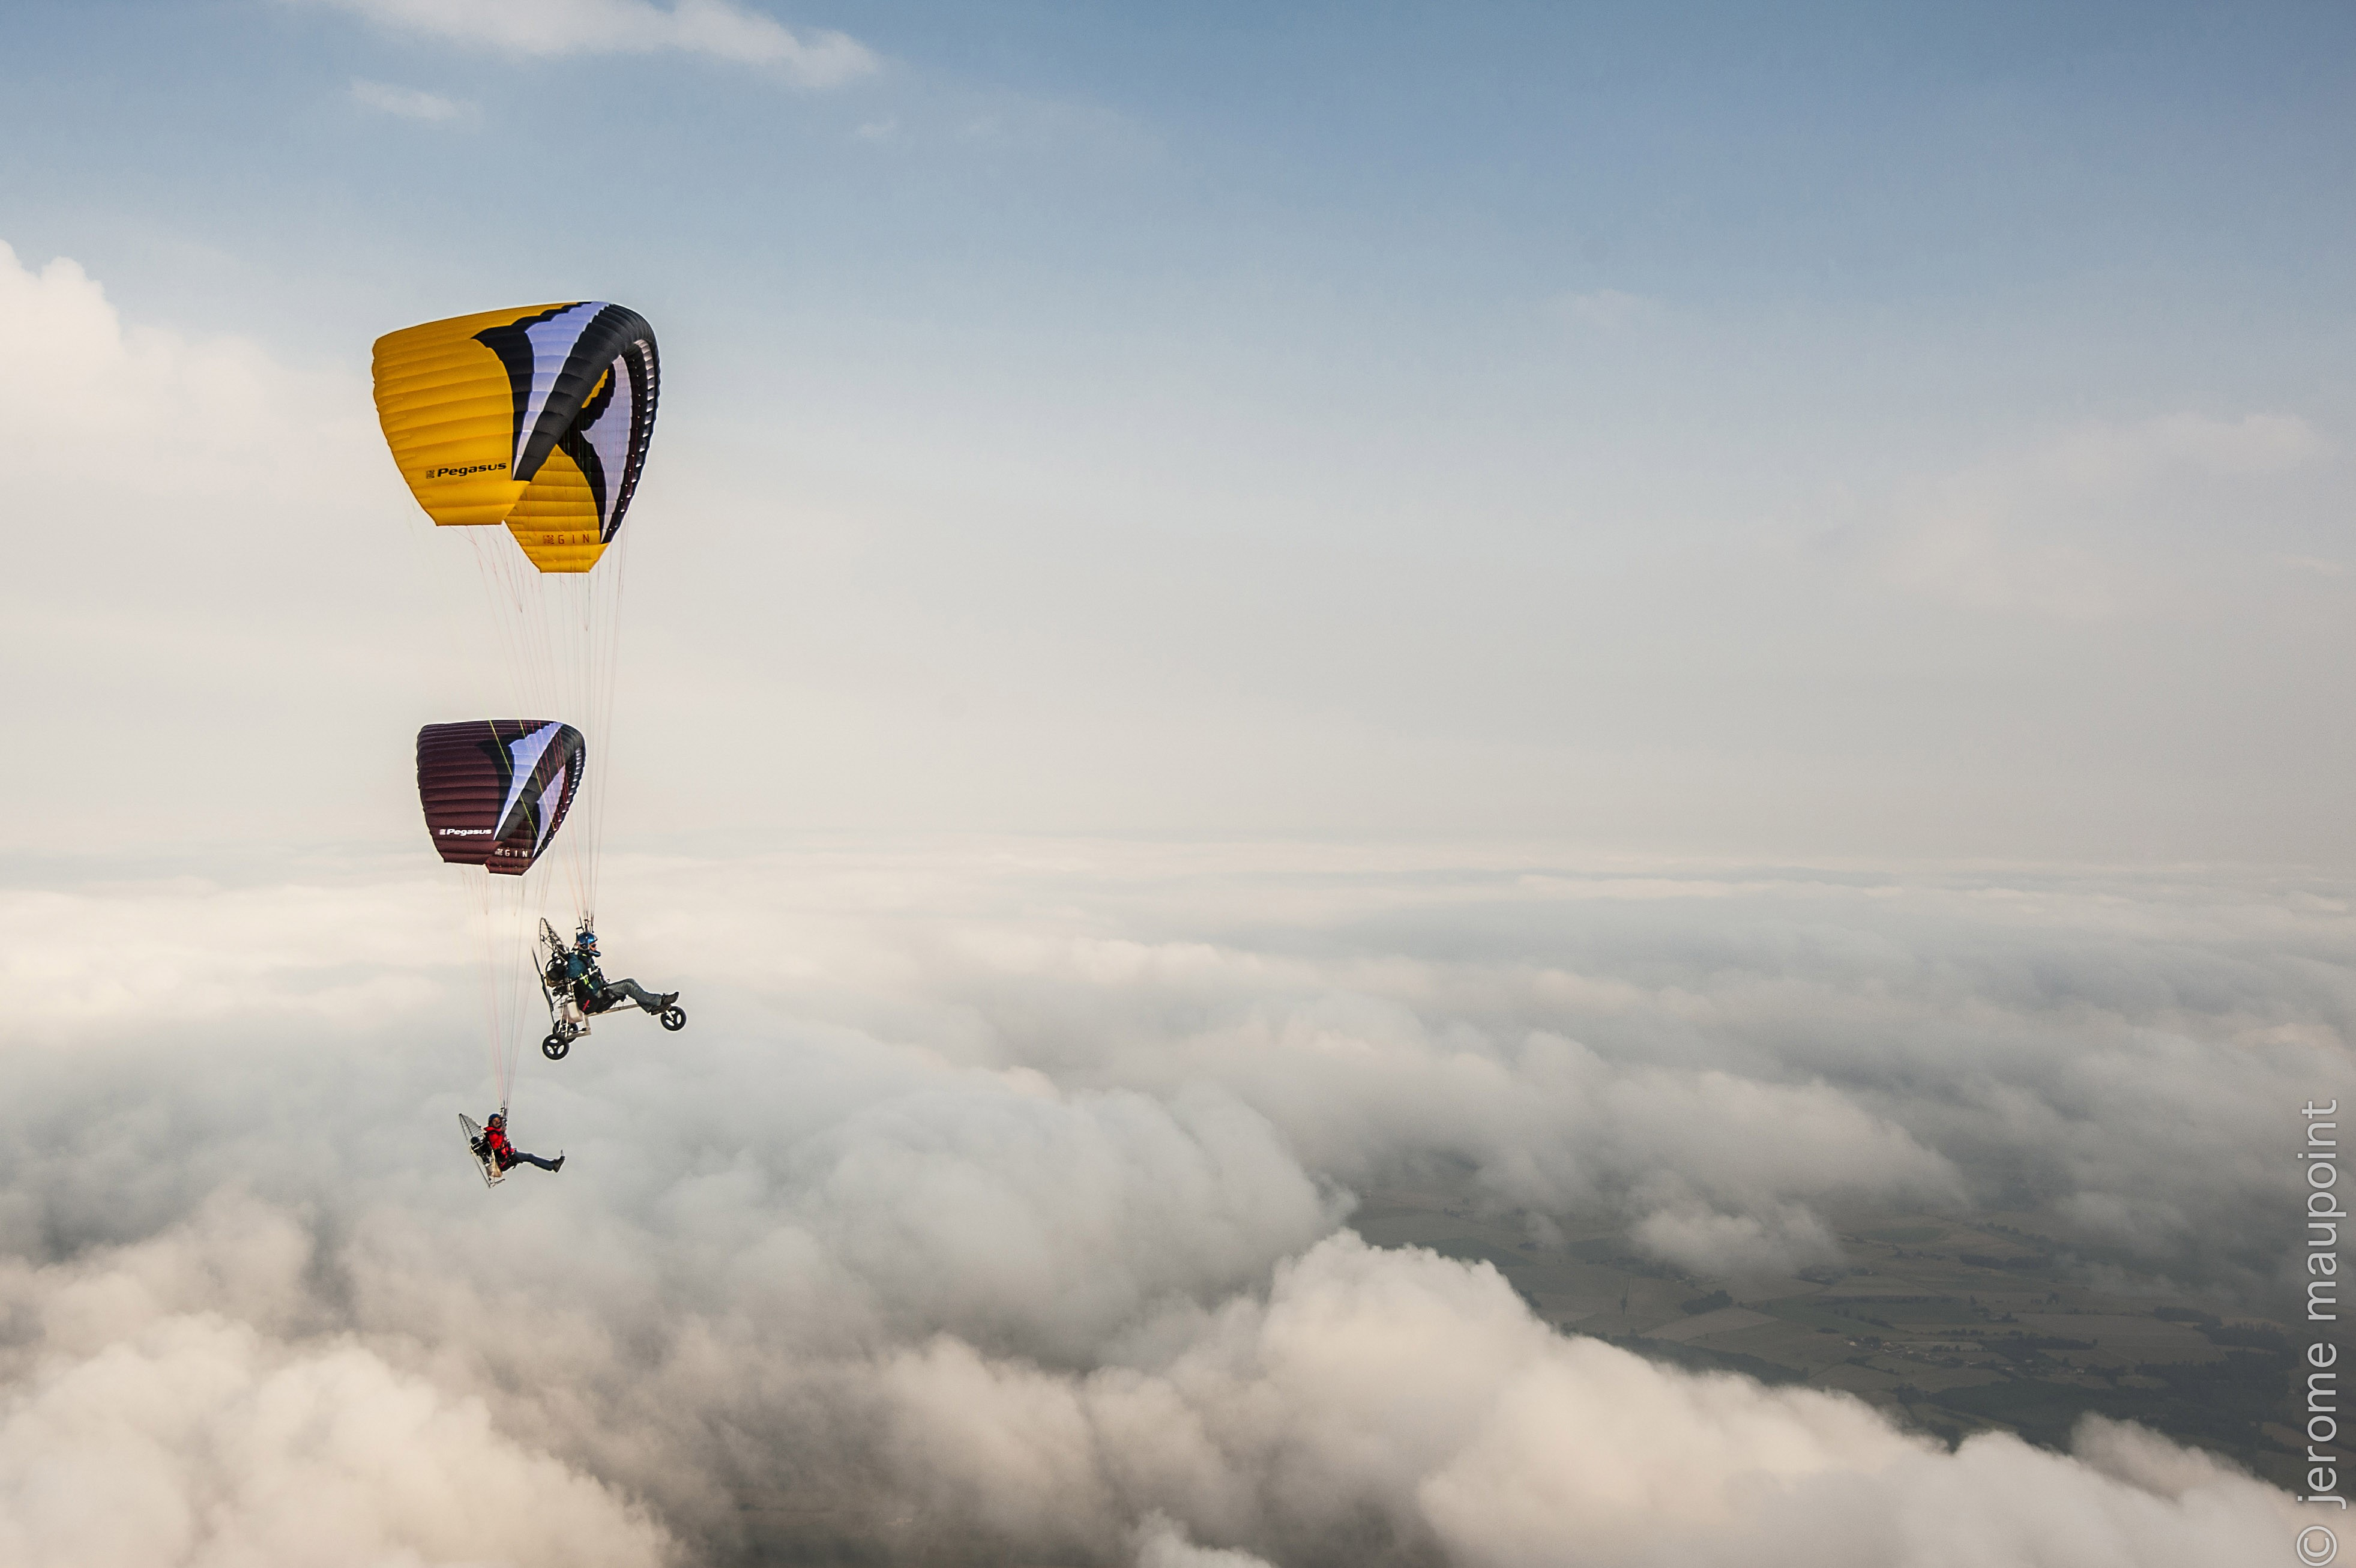 Easy and fun, the Pégasus 2 it's a winderfull paraglider for all pilots